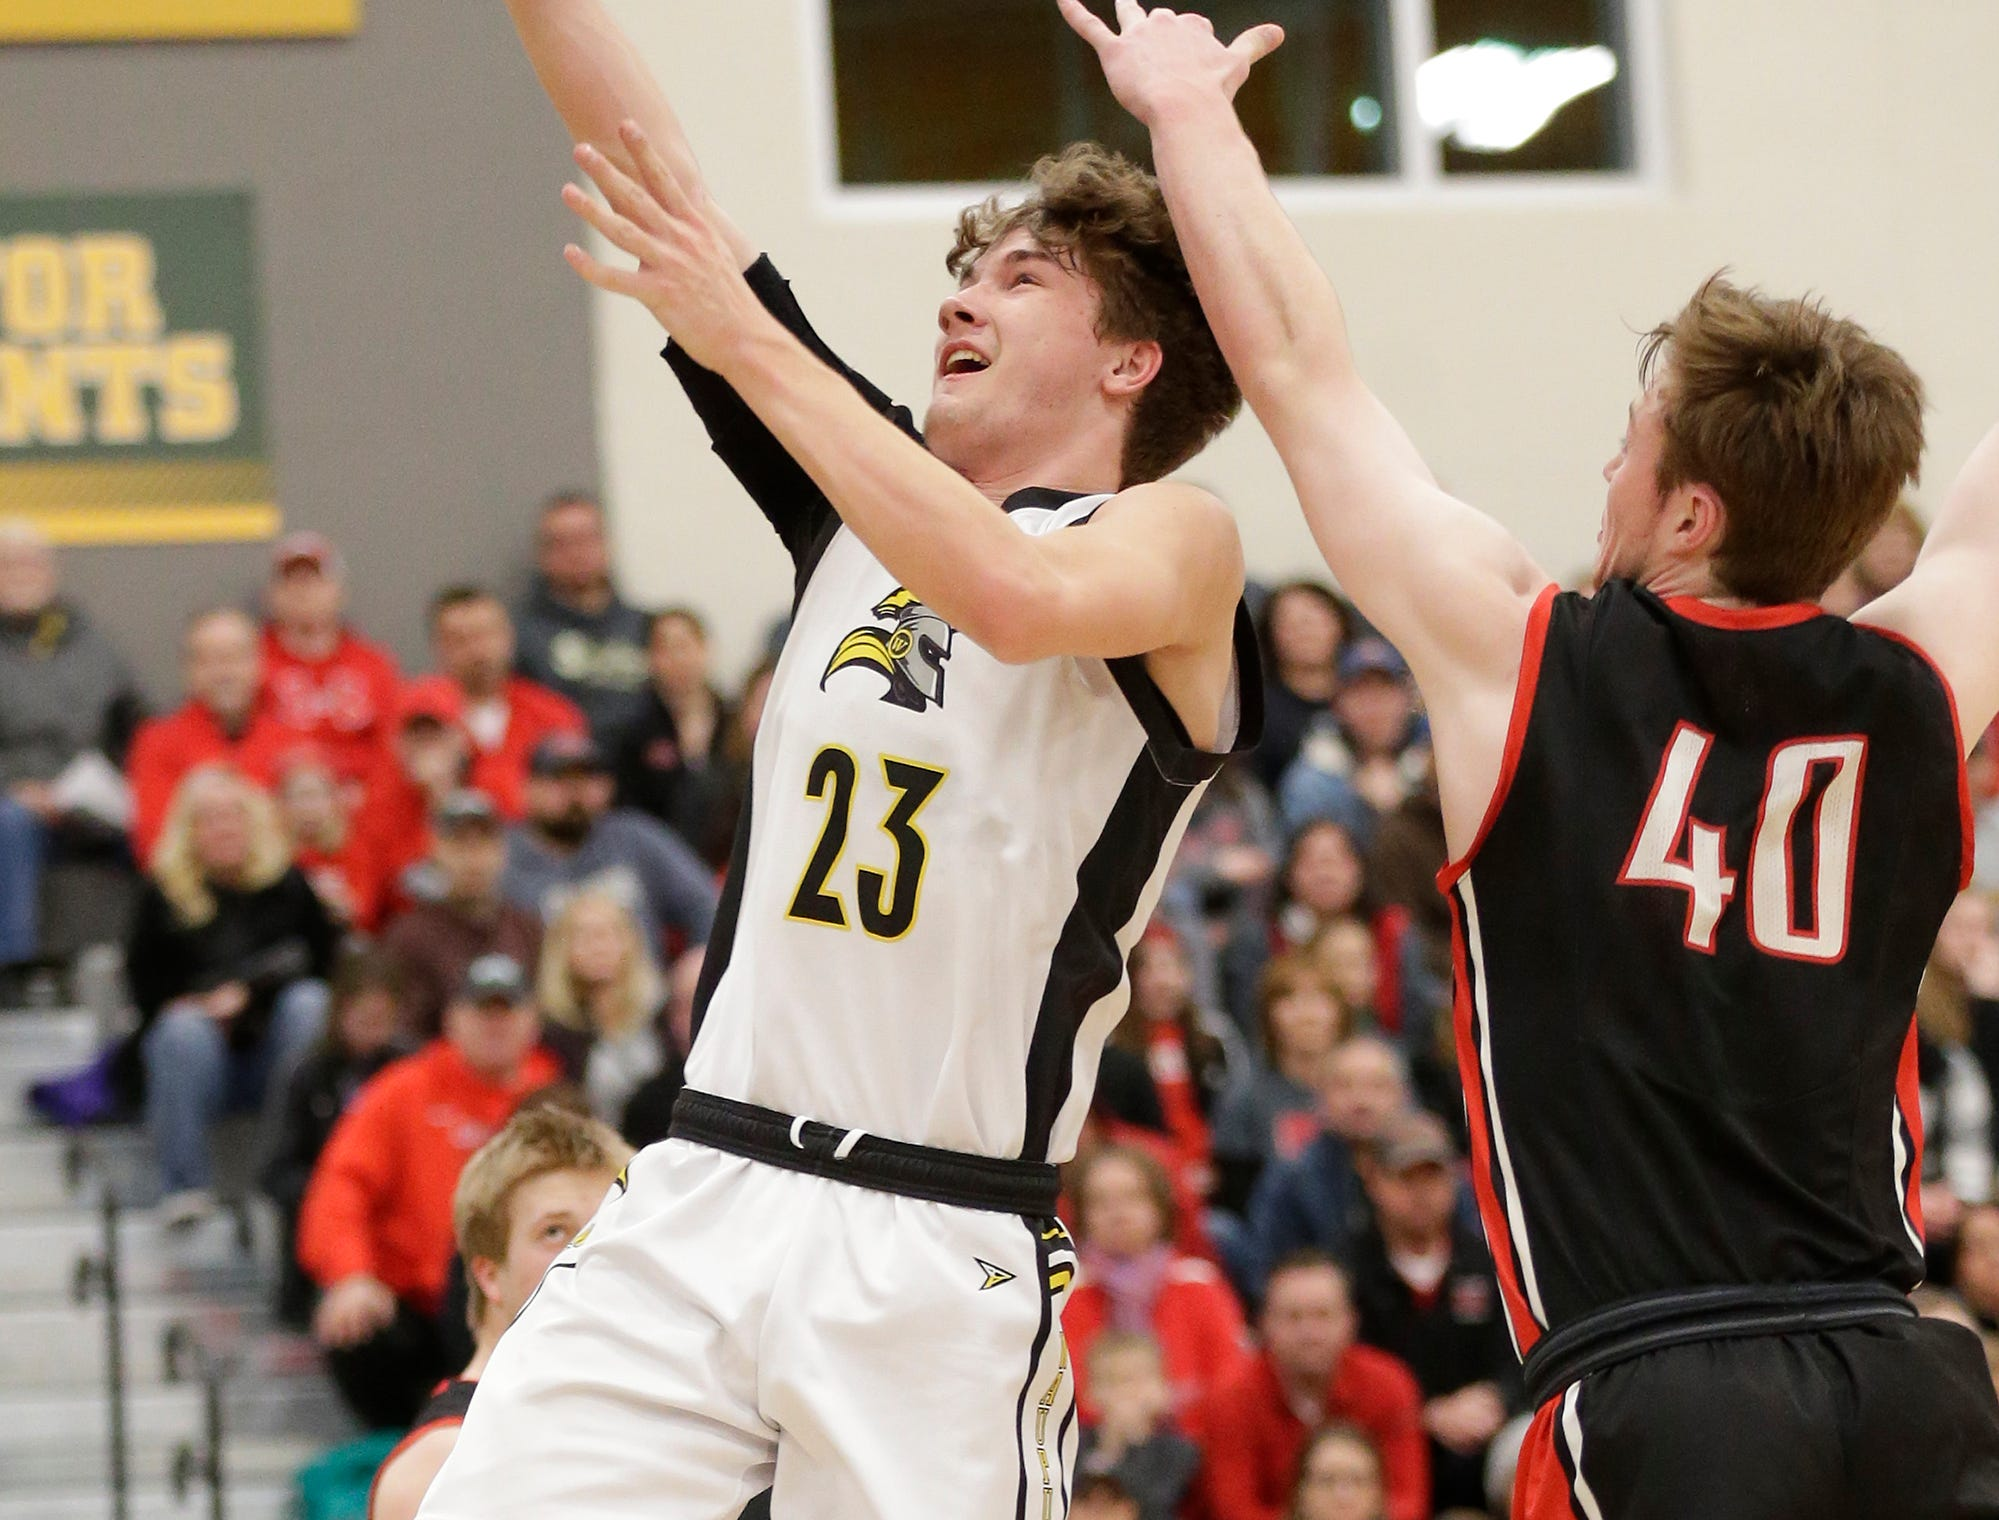 Waupun High School boys basketball's Reece Homan (23) goes up for a basket against Columbus High School's Ben Emler (40) during their WIAA division 3 sectional semi-final game Thursday, March 7, 2019 in Beaver Dam, Wis. Waupun won the game 79-36. Doug Raflik/USA TODAY NETWORK-Wisconsin